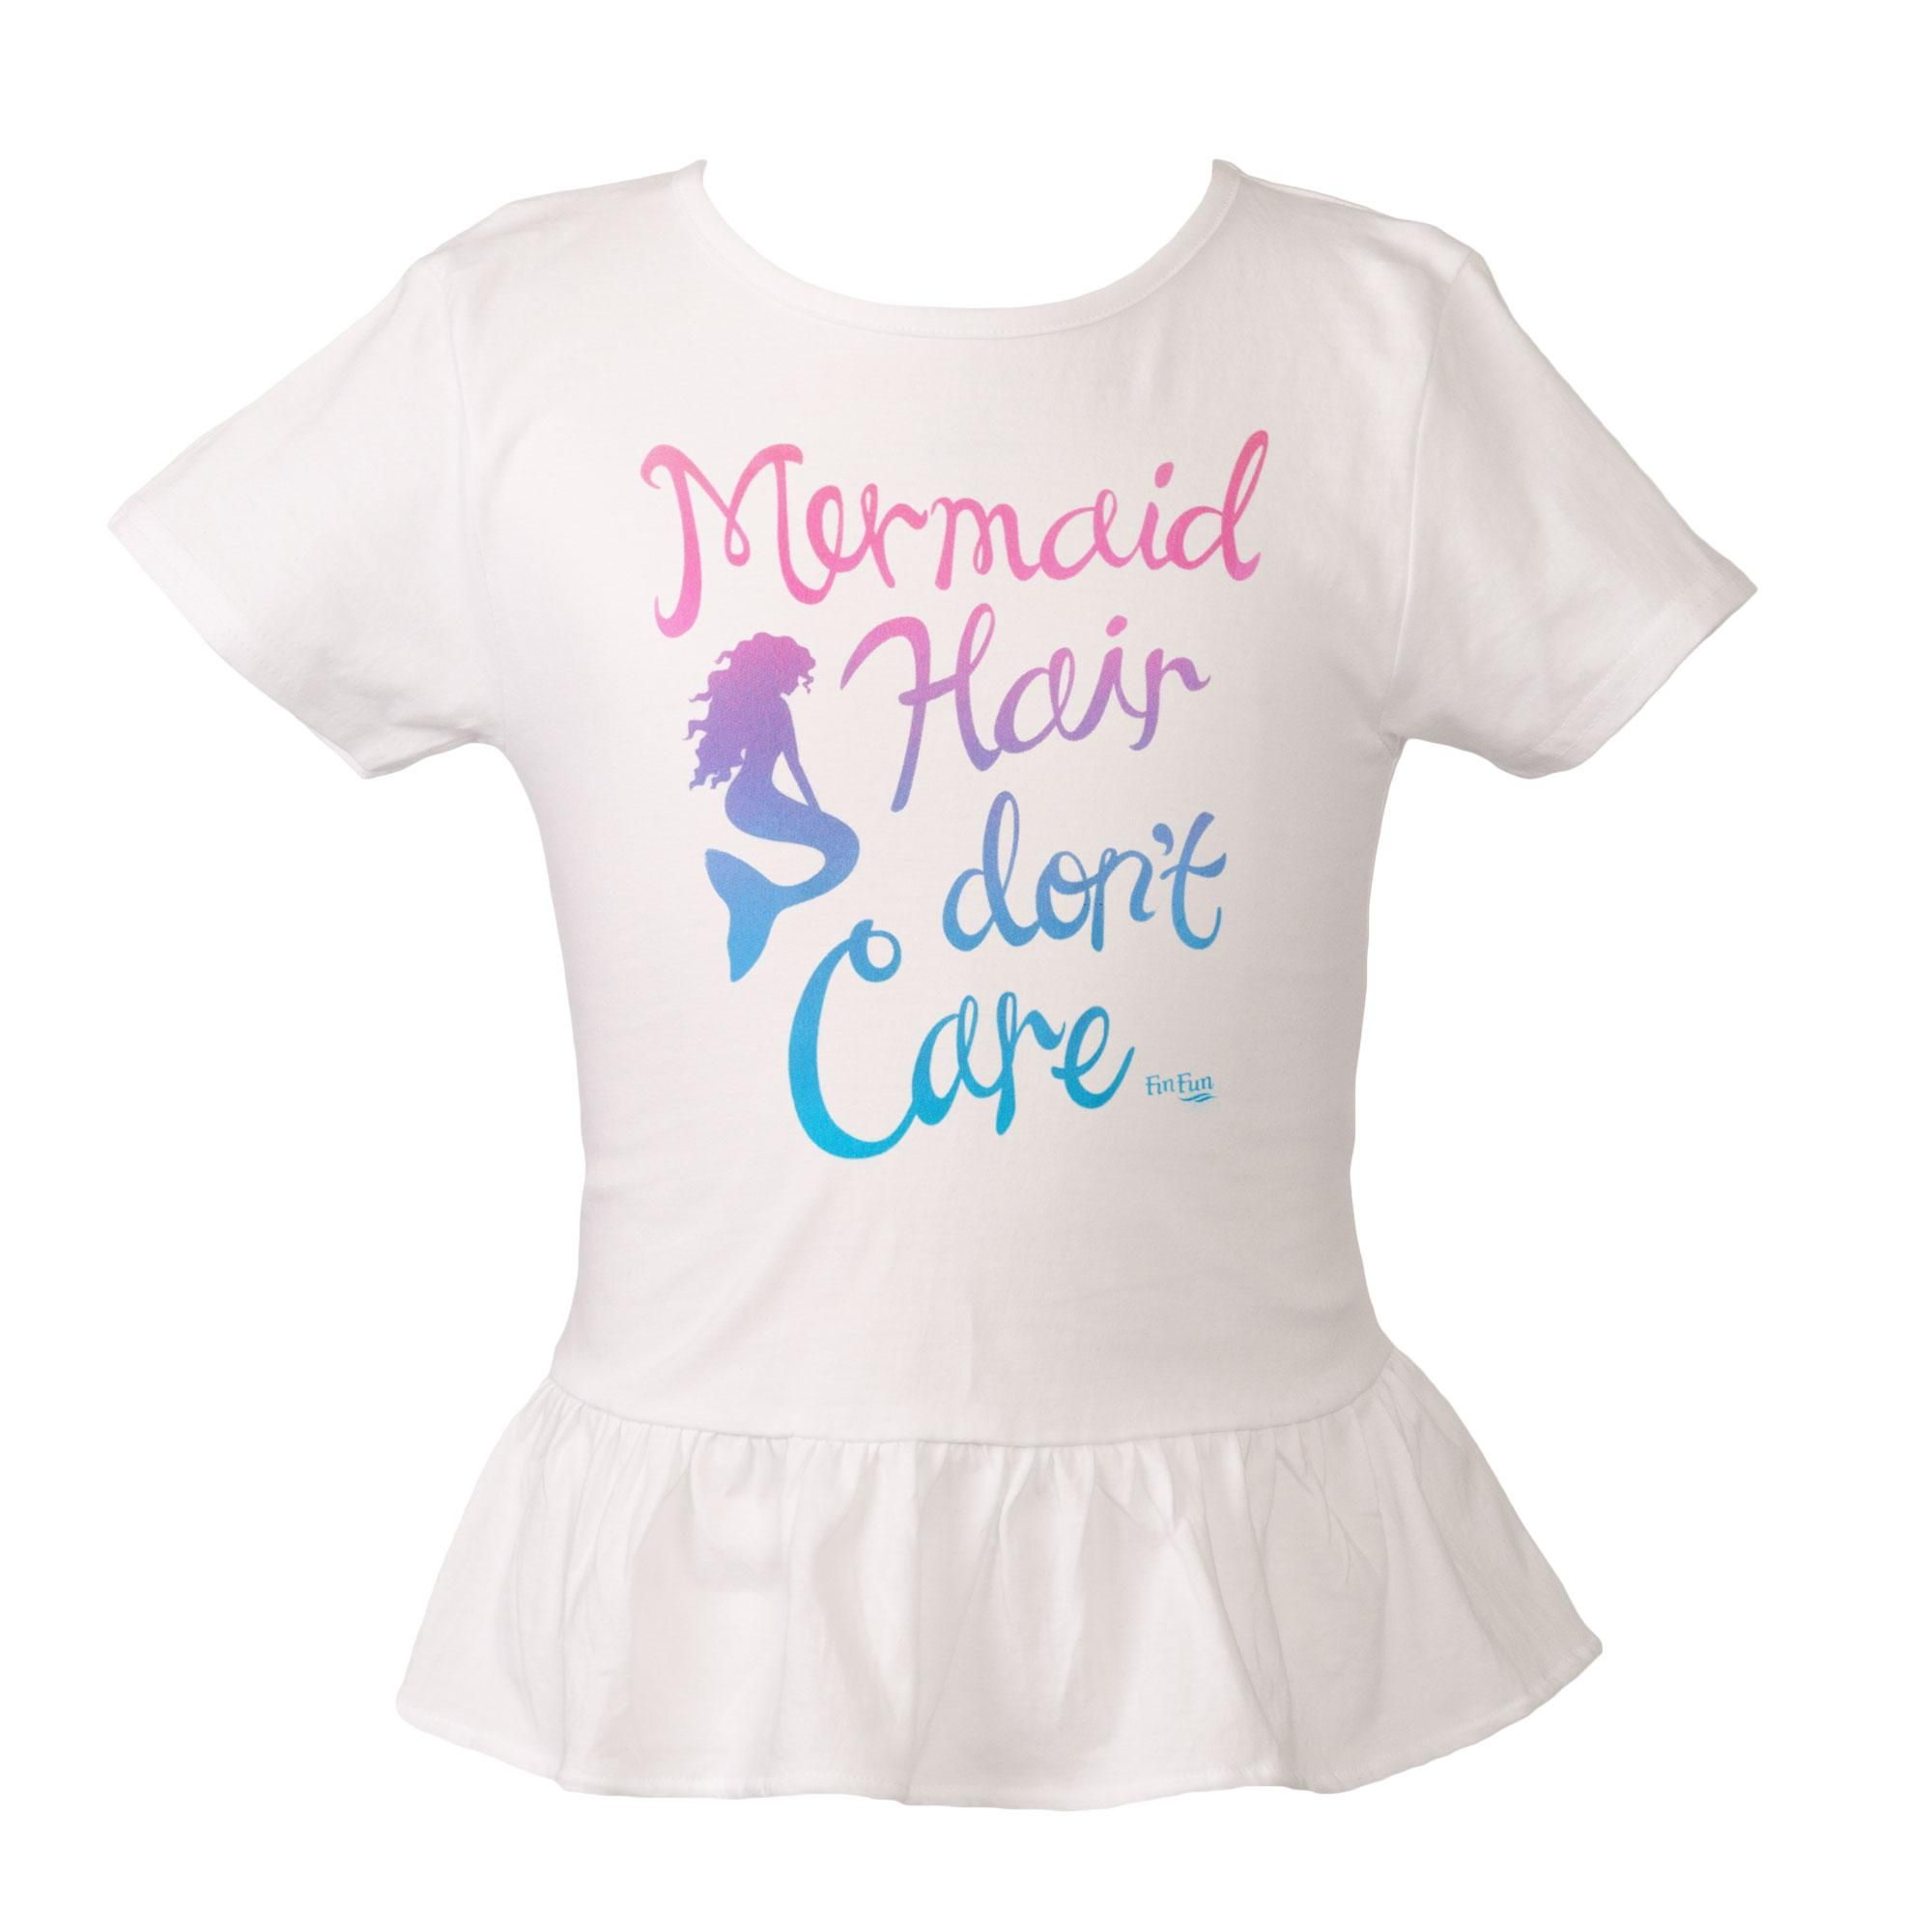 7716f6905 Kids Mermaid Hair Don't Care Tee - White. Tap to expand